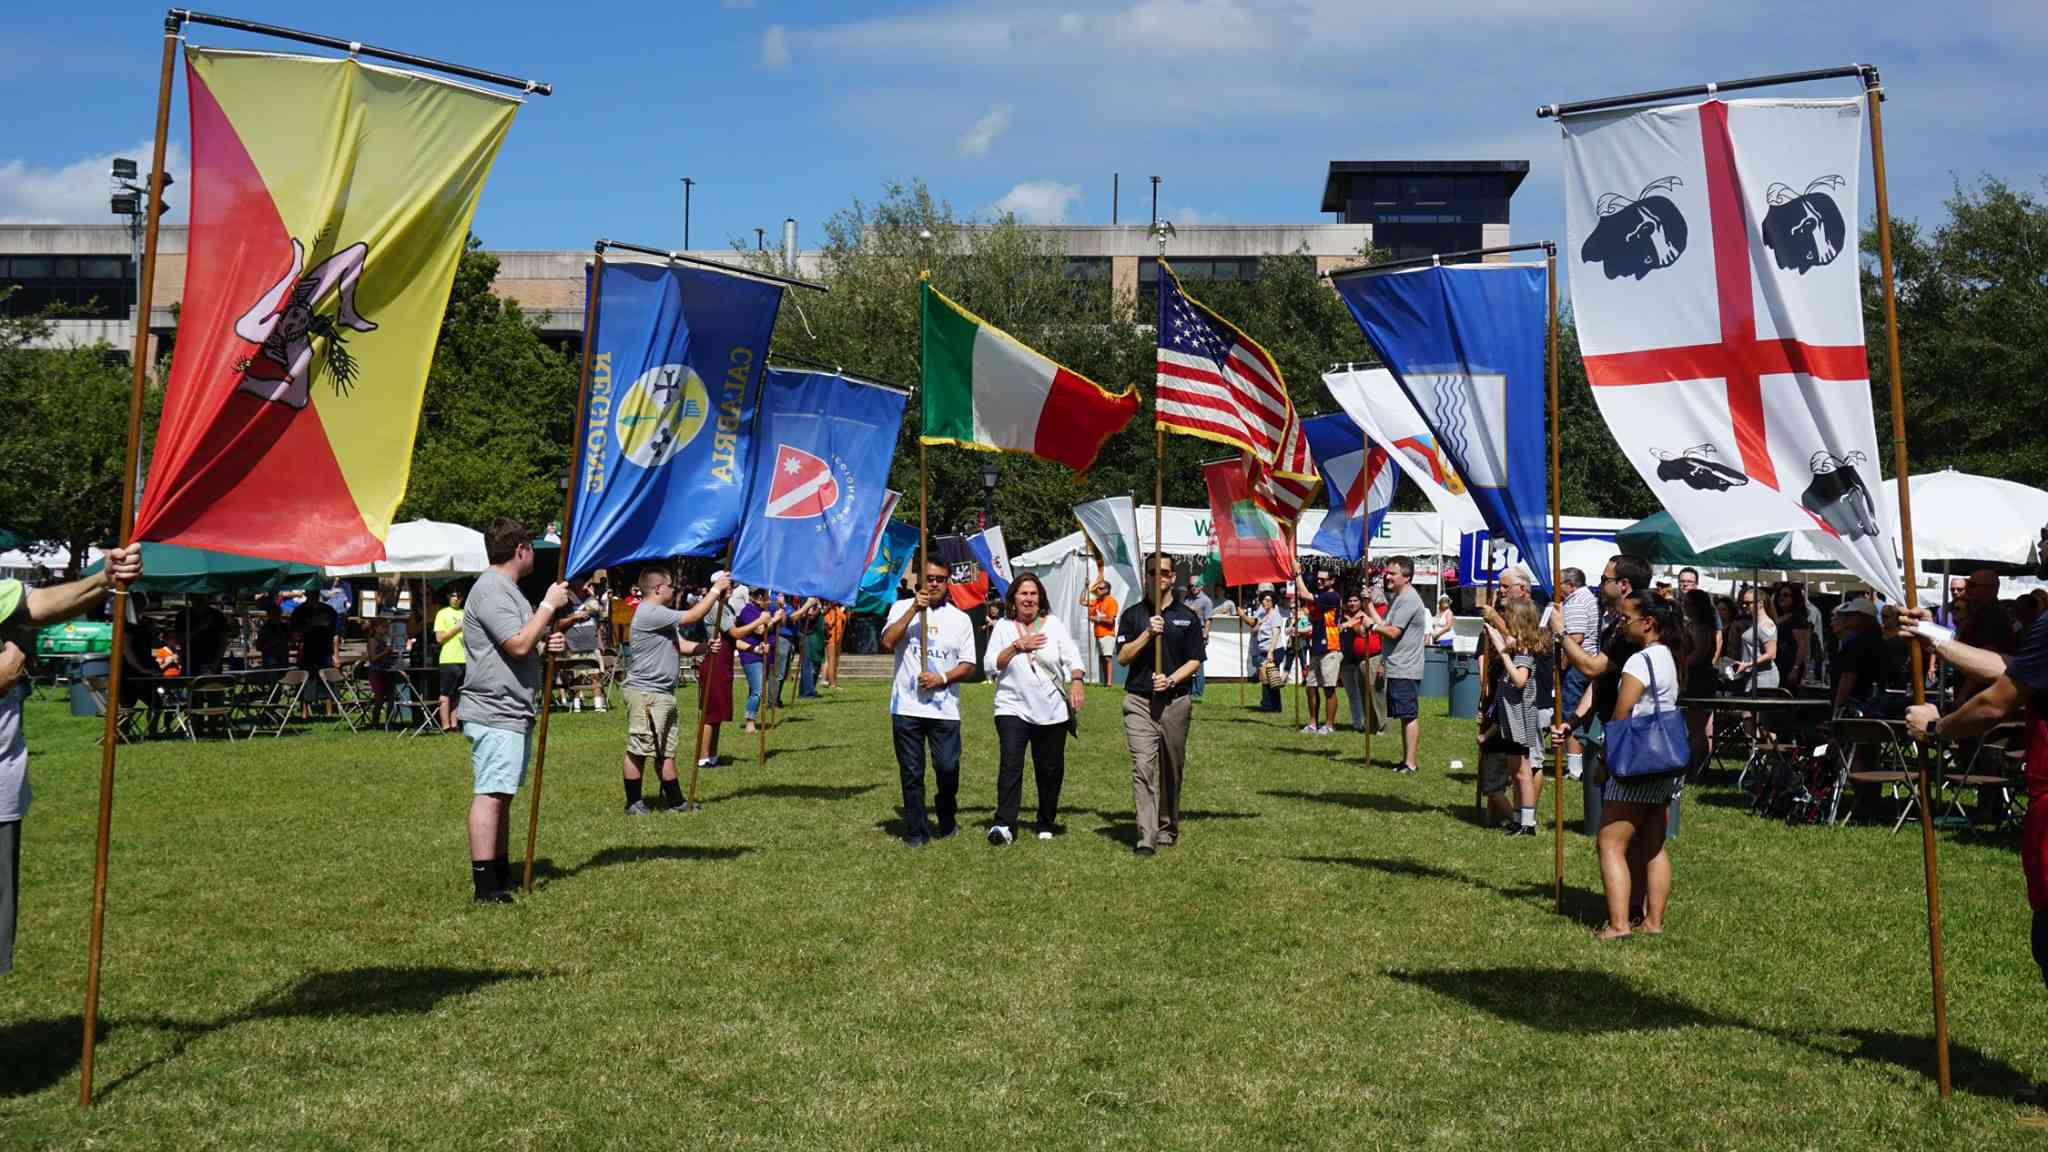 People holding flags at the Italian Festival